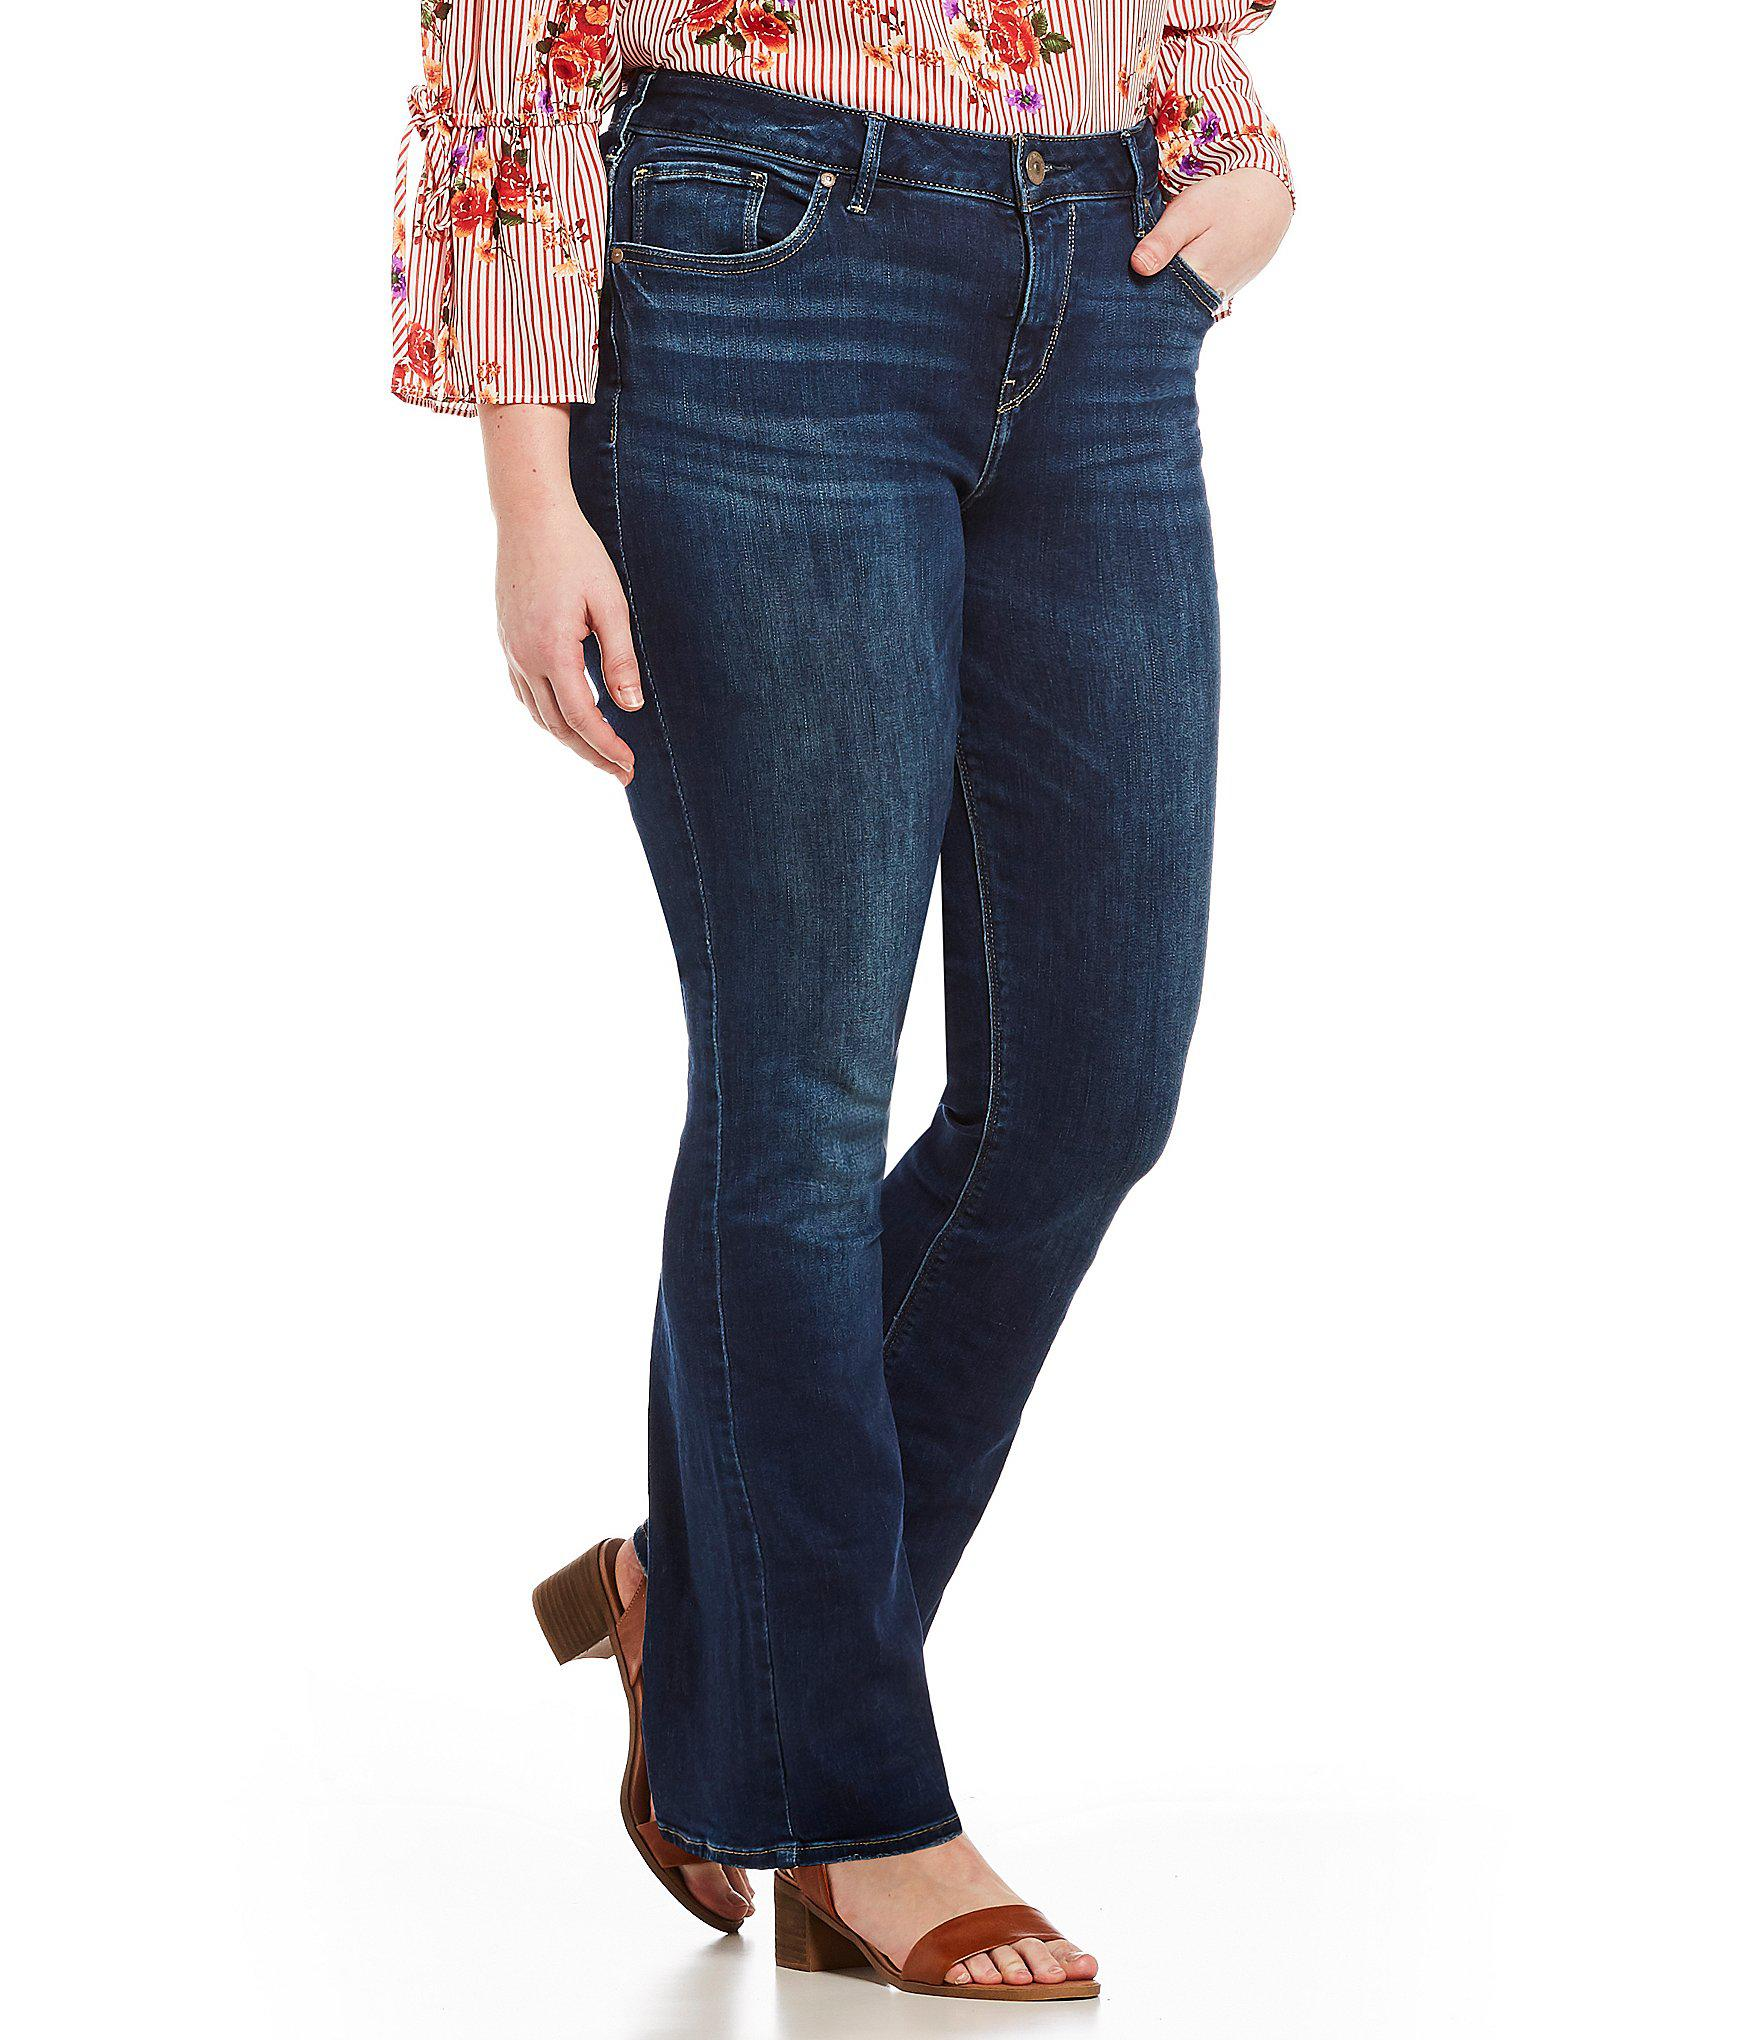 fae41a0f57e Lyst - Silver Jeans Co. Plus Size High Rise Avery Slim Clean Bootcut ...